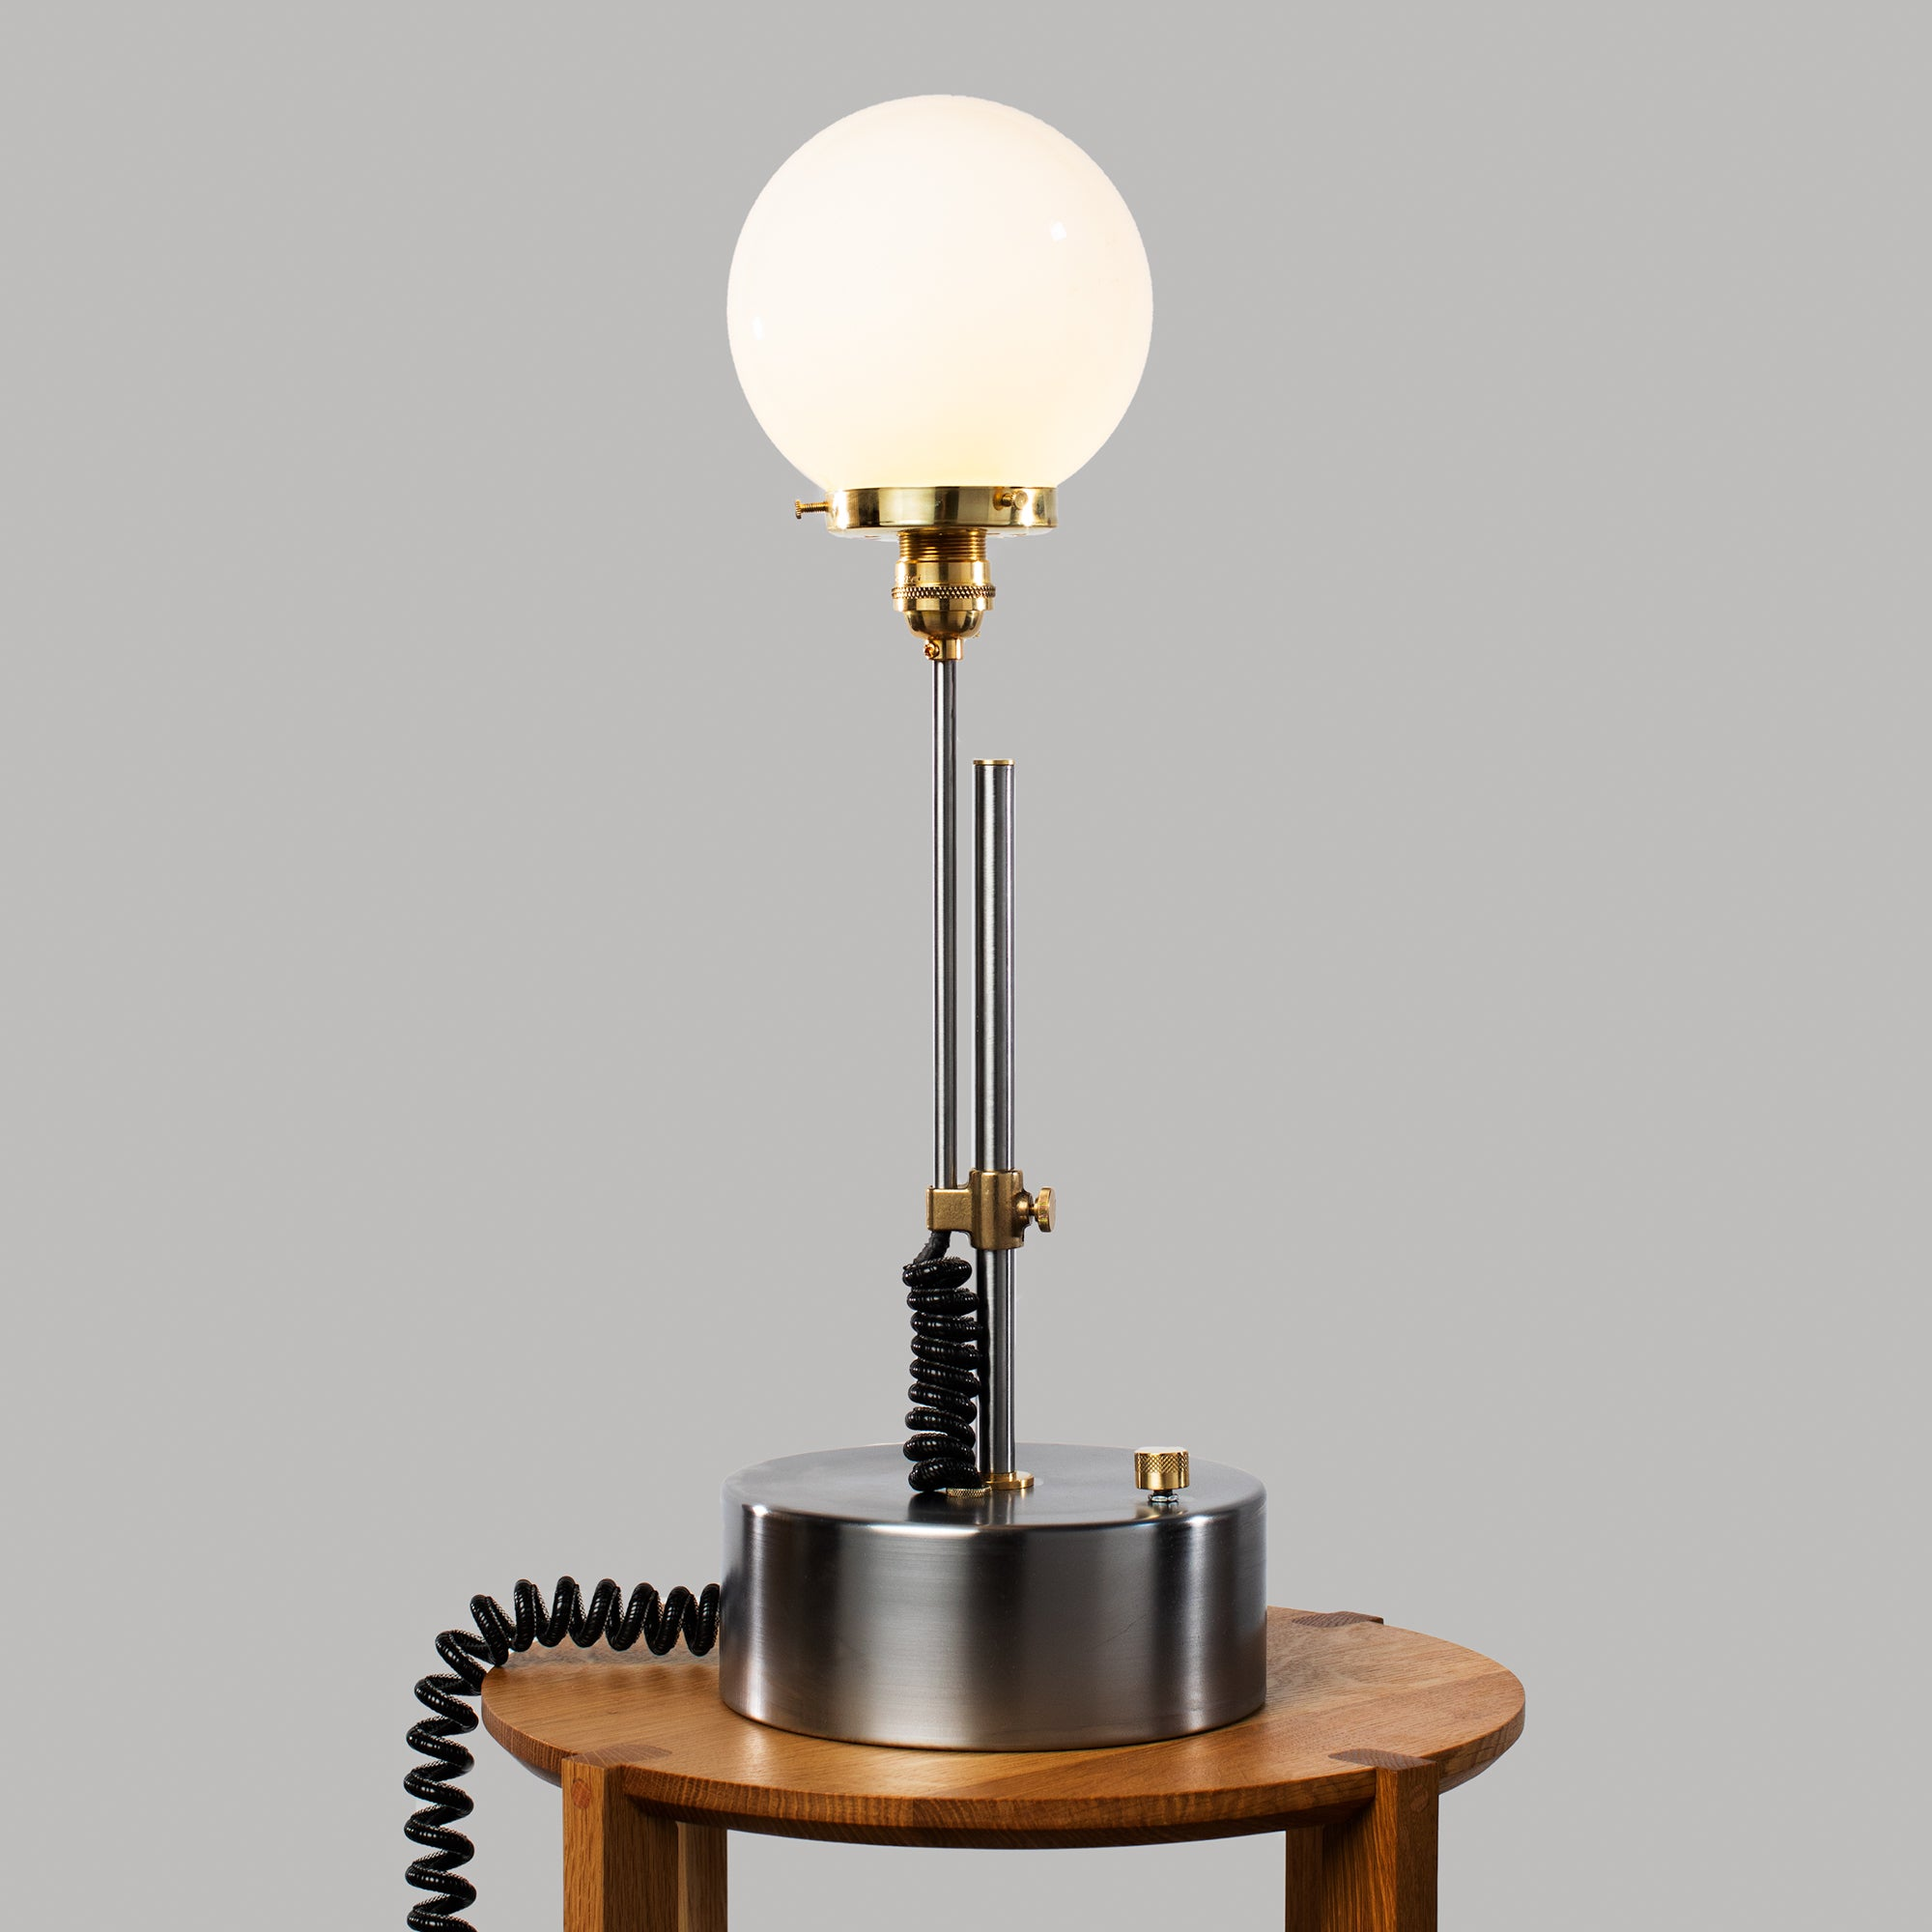 Curly Q Table lamp in Steel